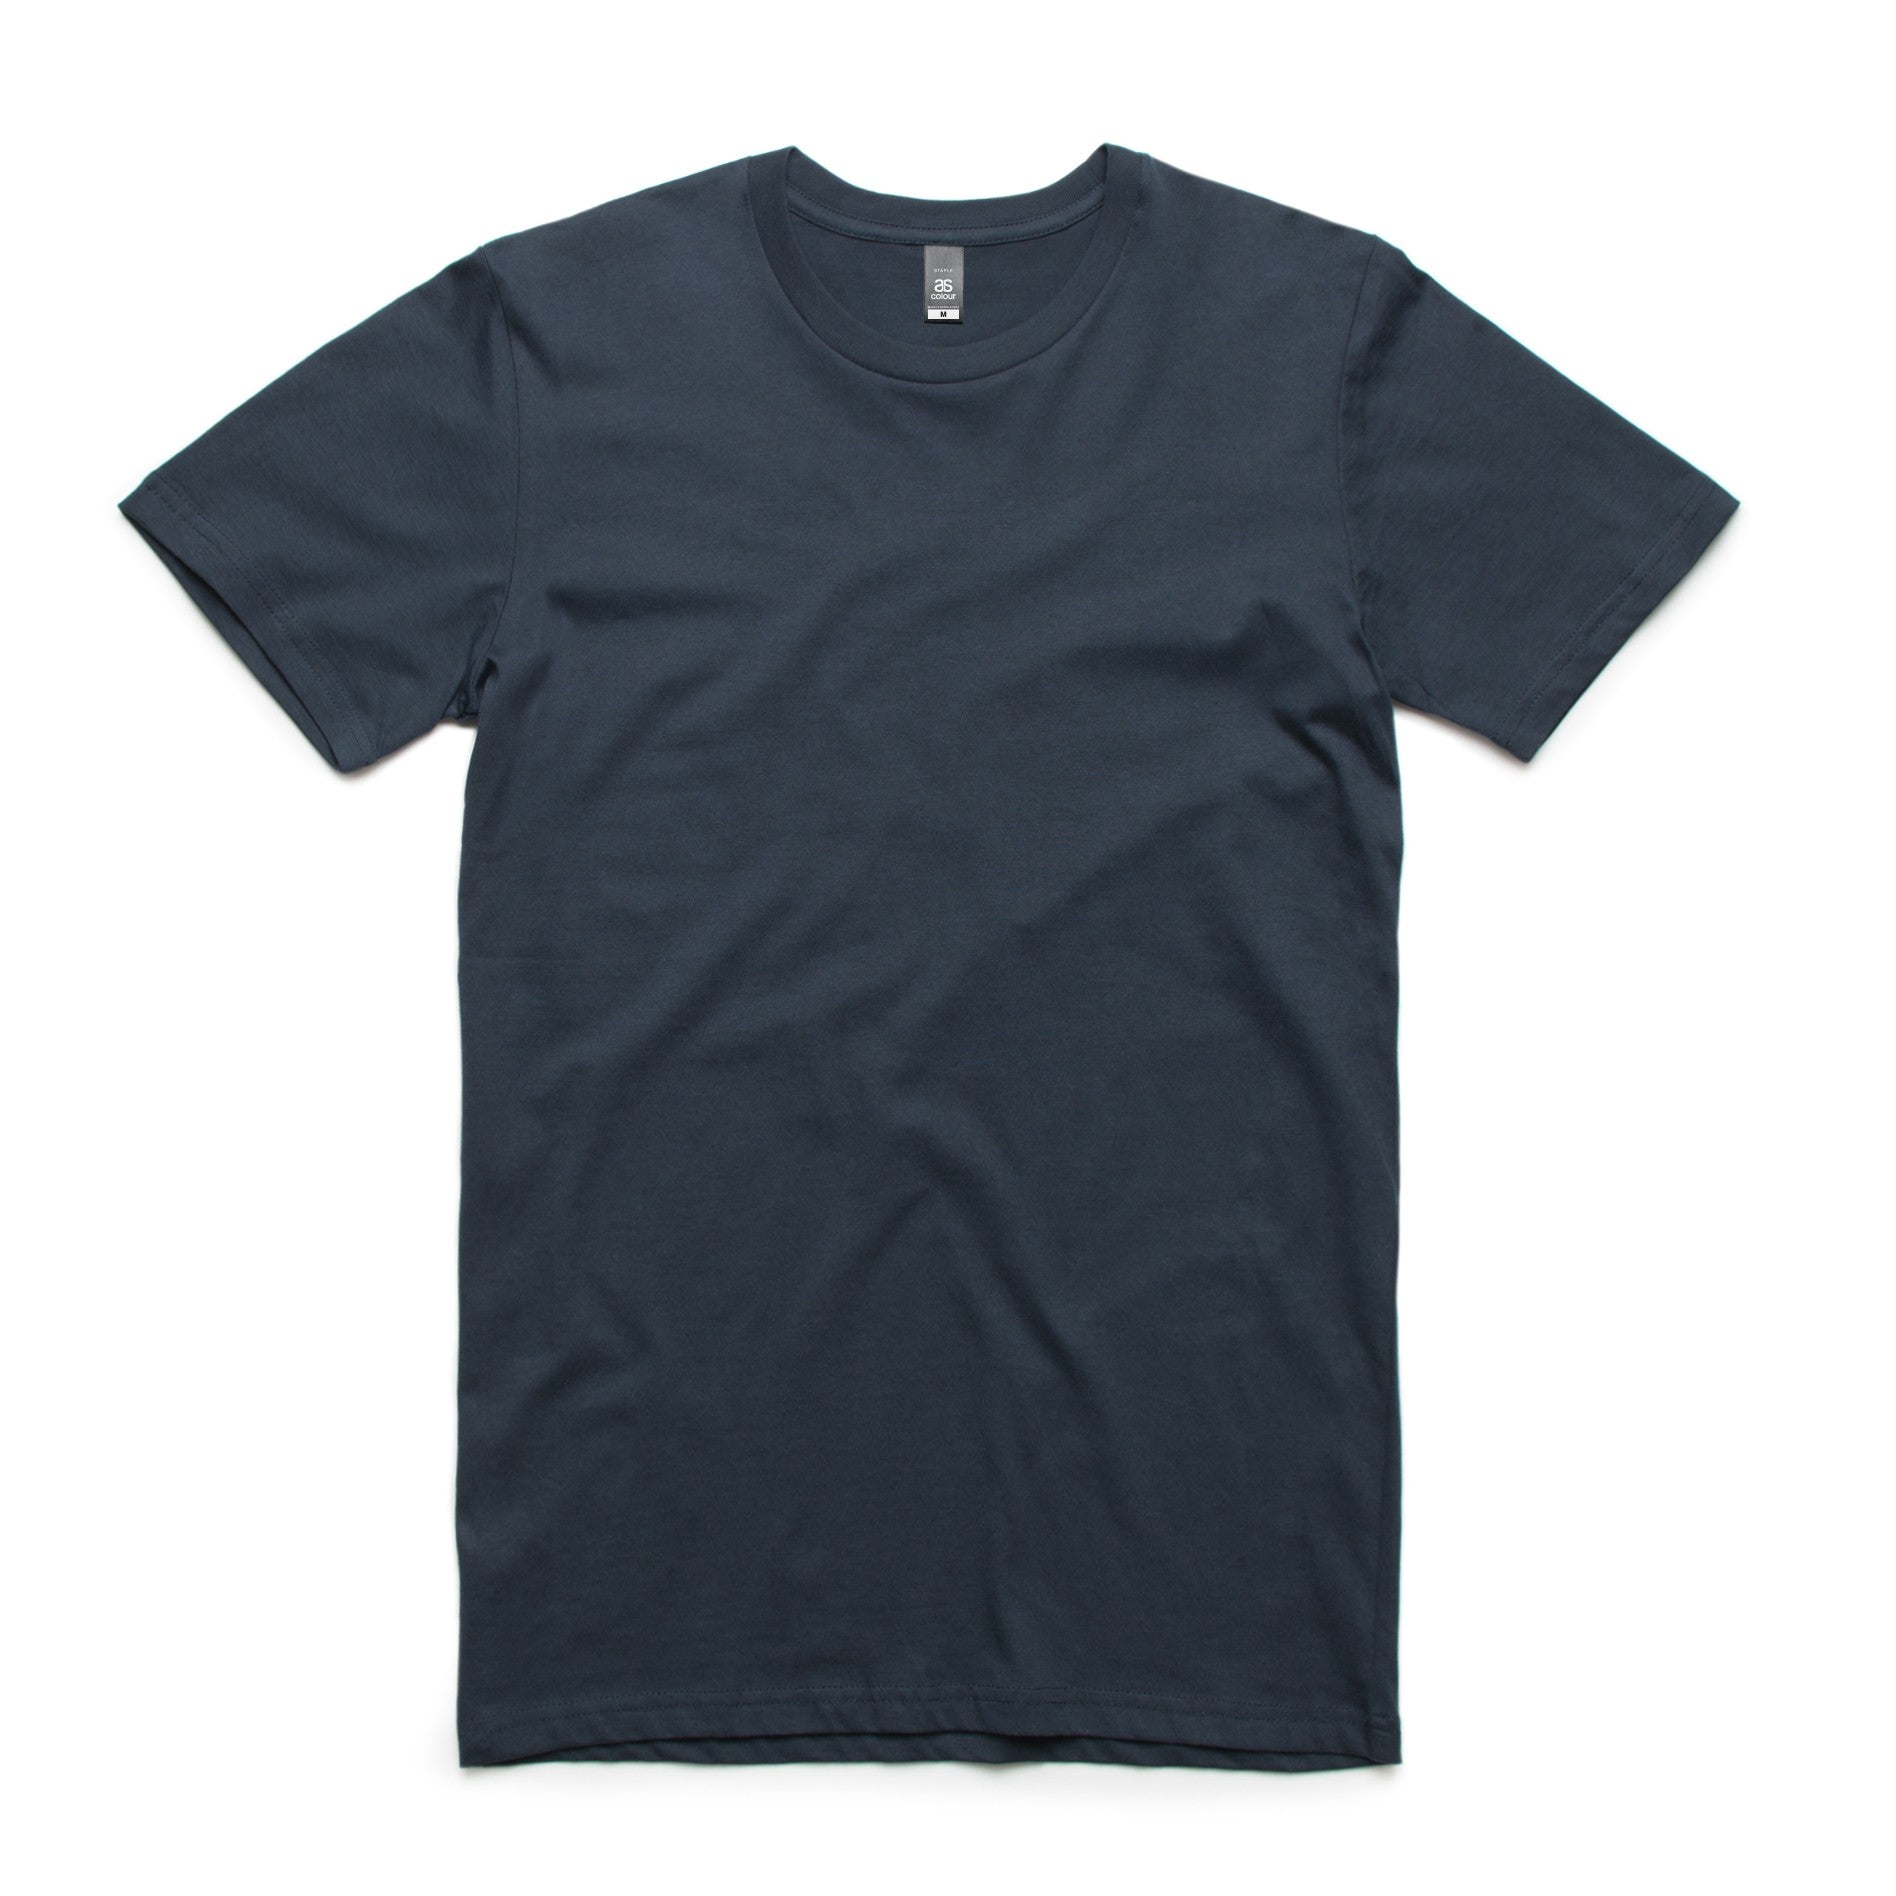 STAPLE TEE (4XL-5XL)